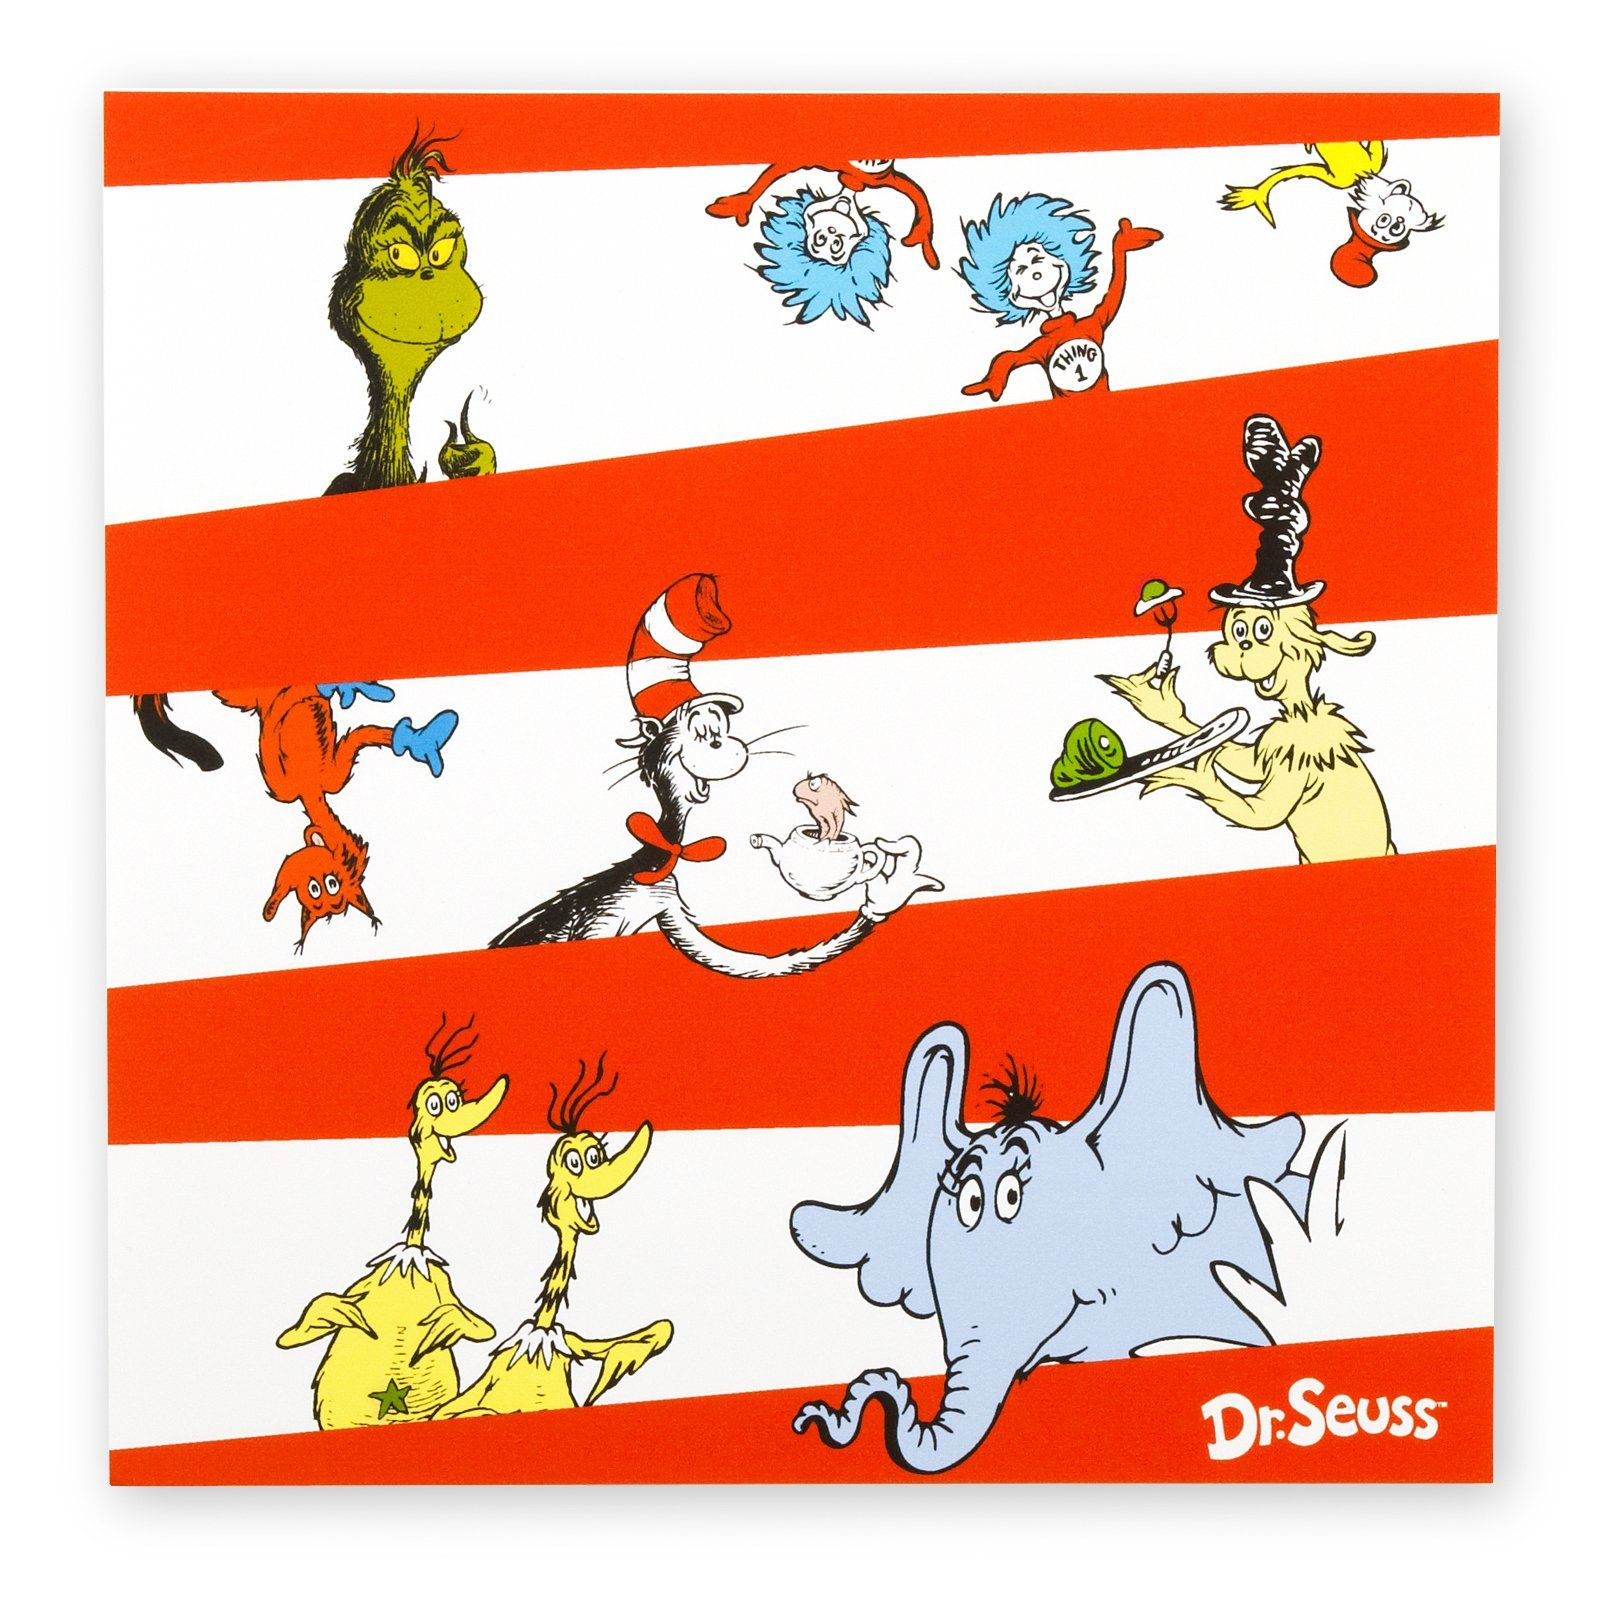 Dr. Seuss Lunch Napkins | Birthdays, Birthday party ideas and Dr ...